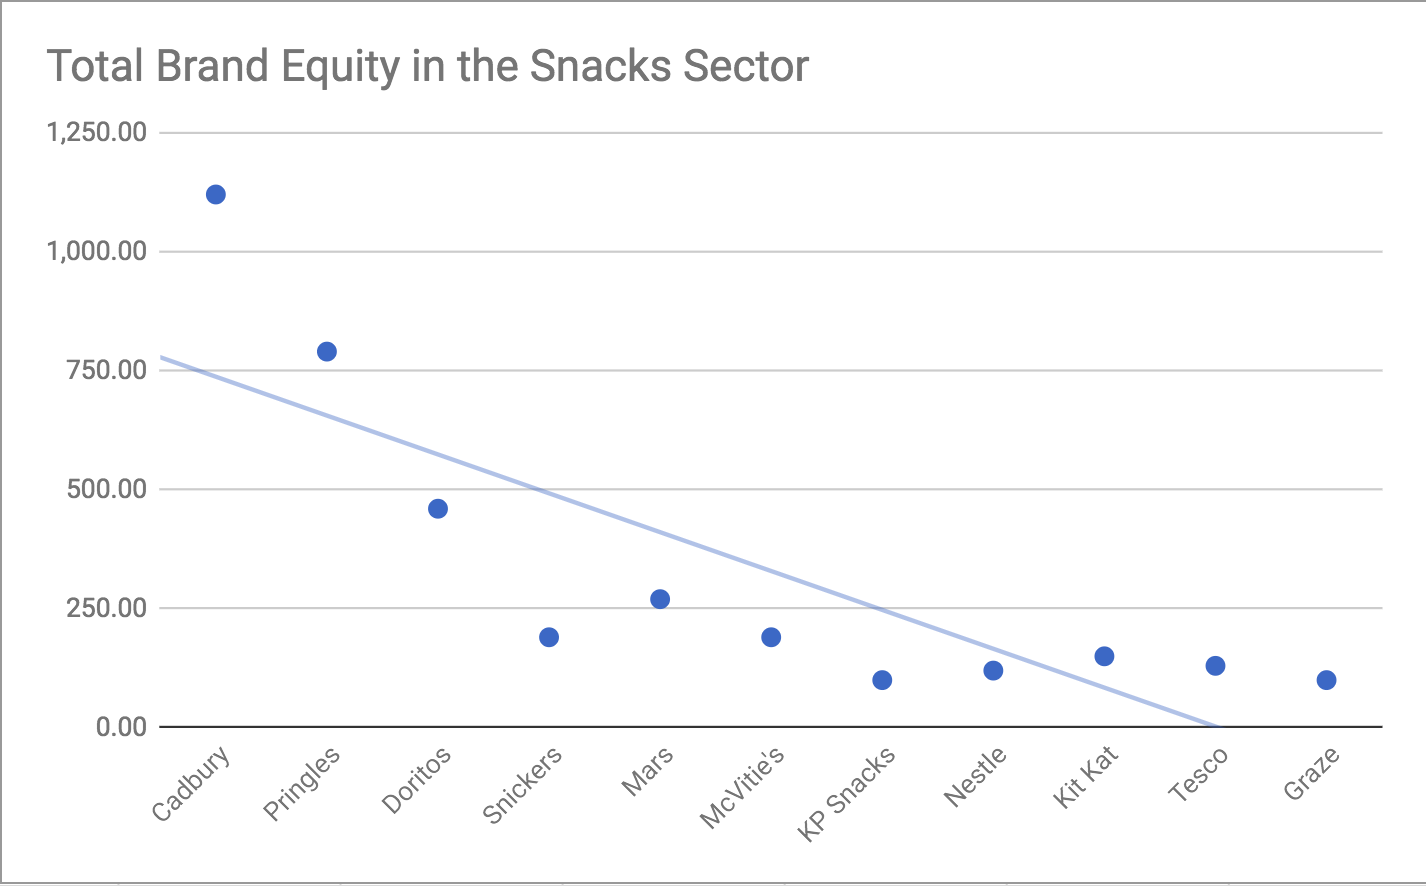 Snack Brand Equity No Walkers.png